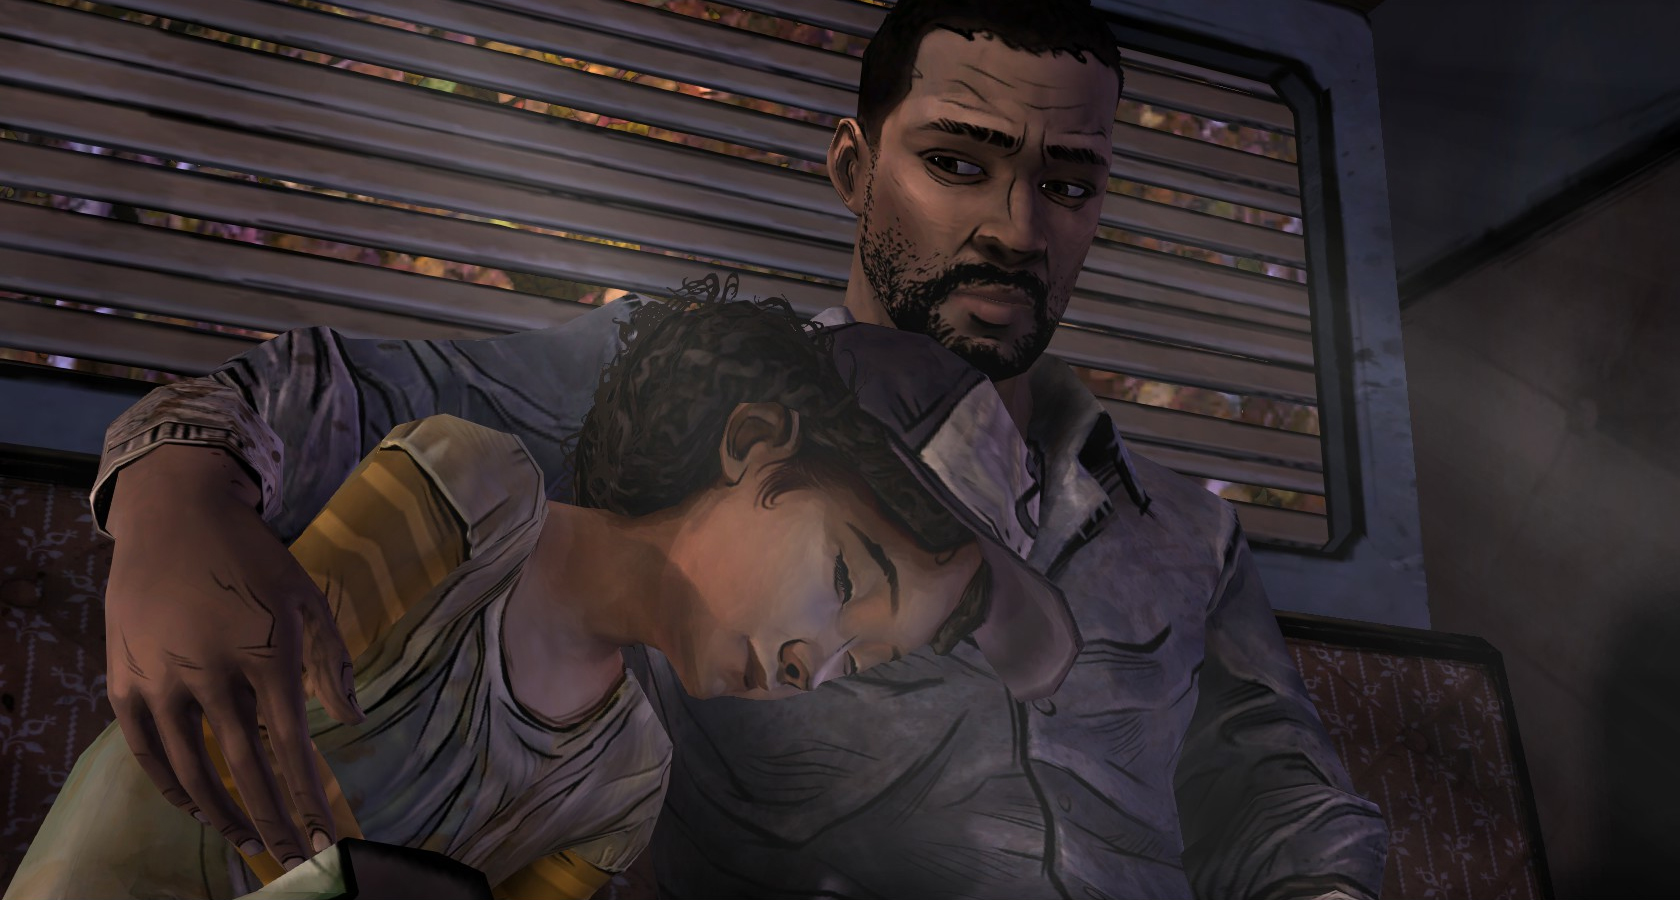 Lee and Clementine in the Trailer